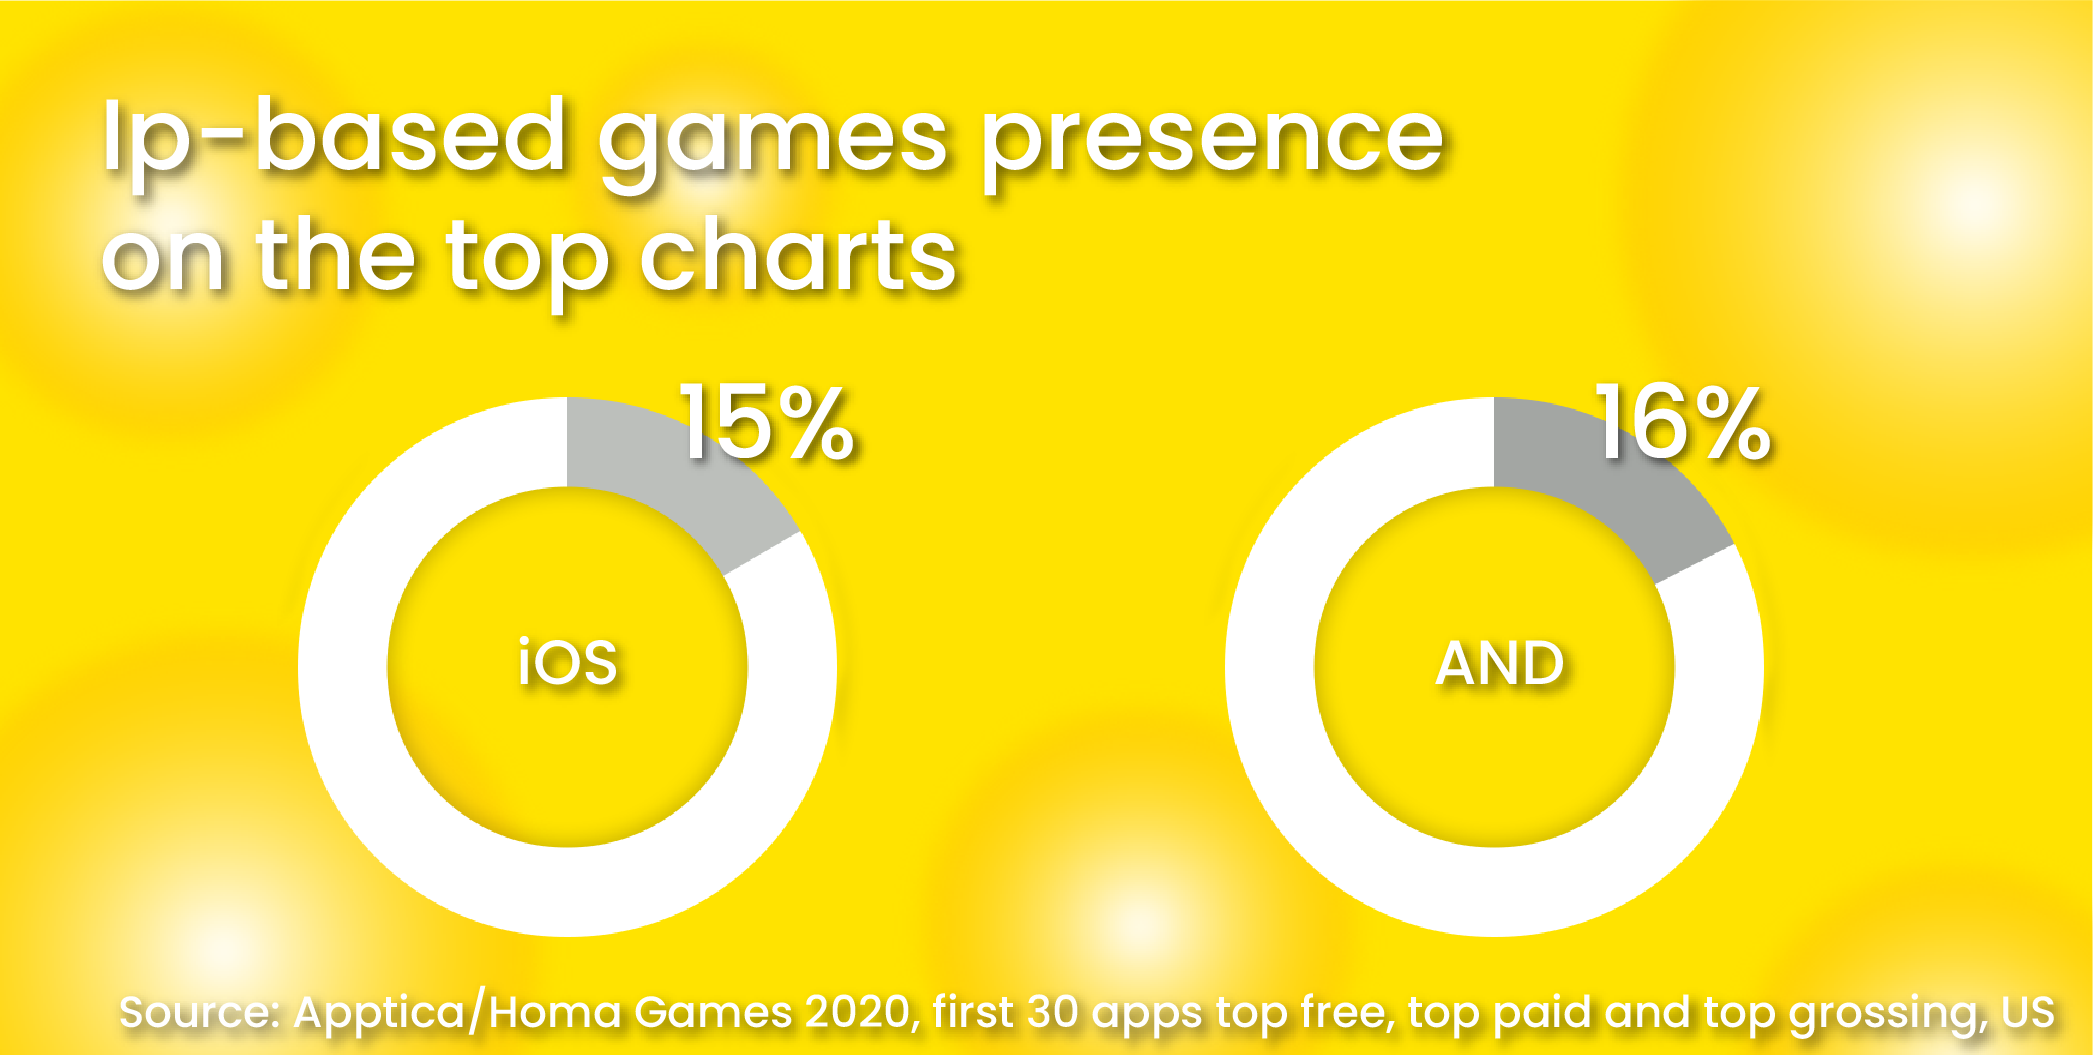 IP-based games presence on the top charts